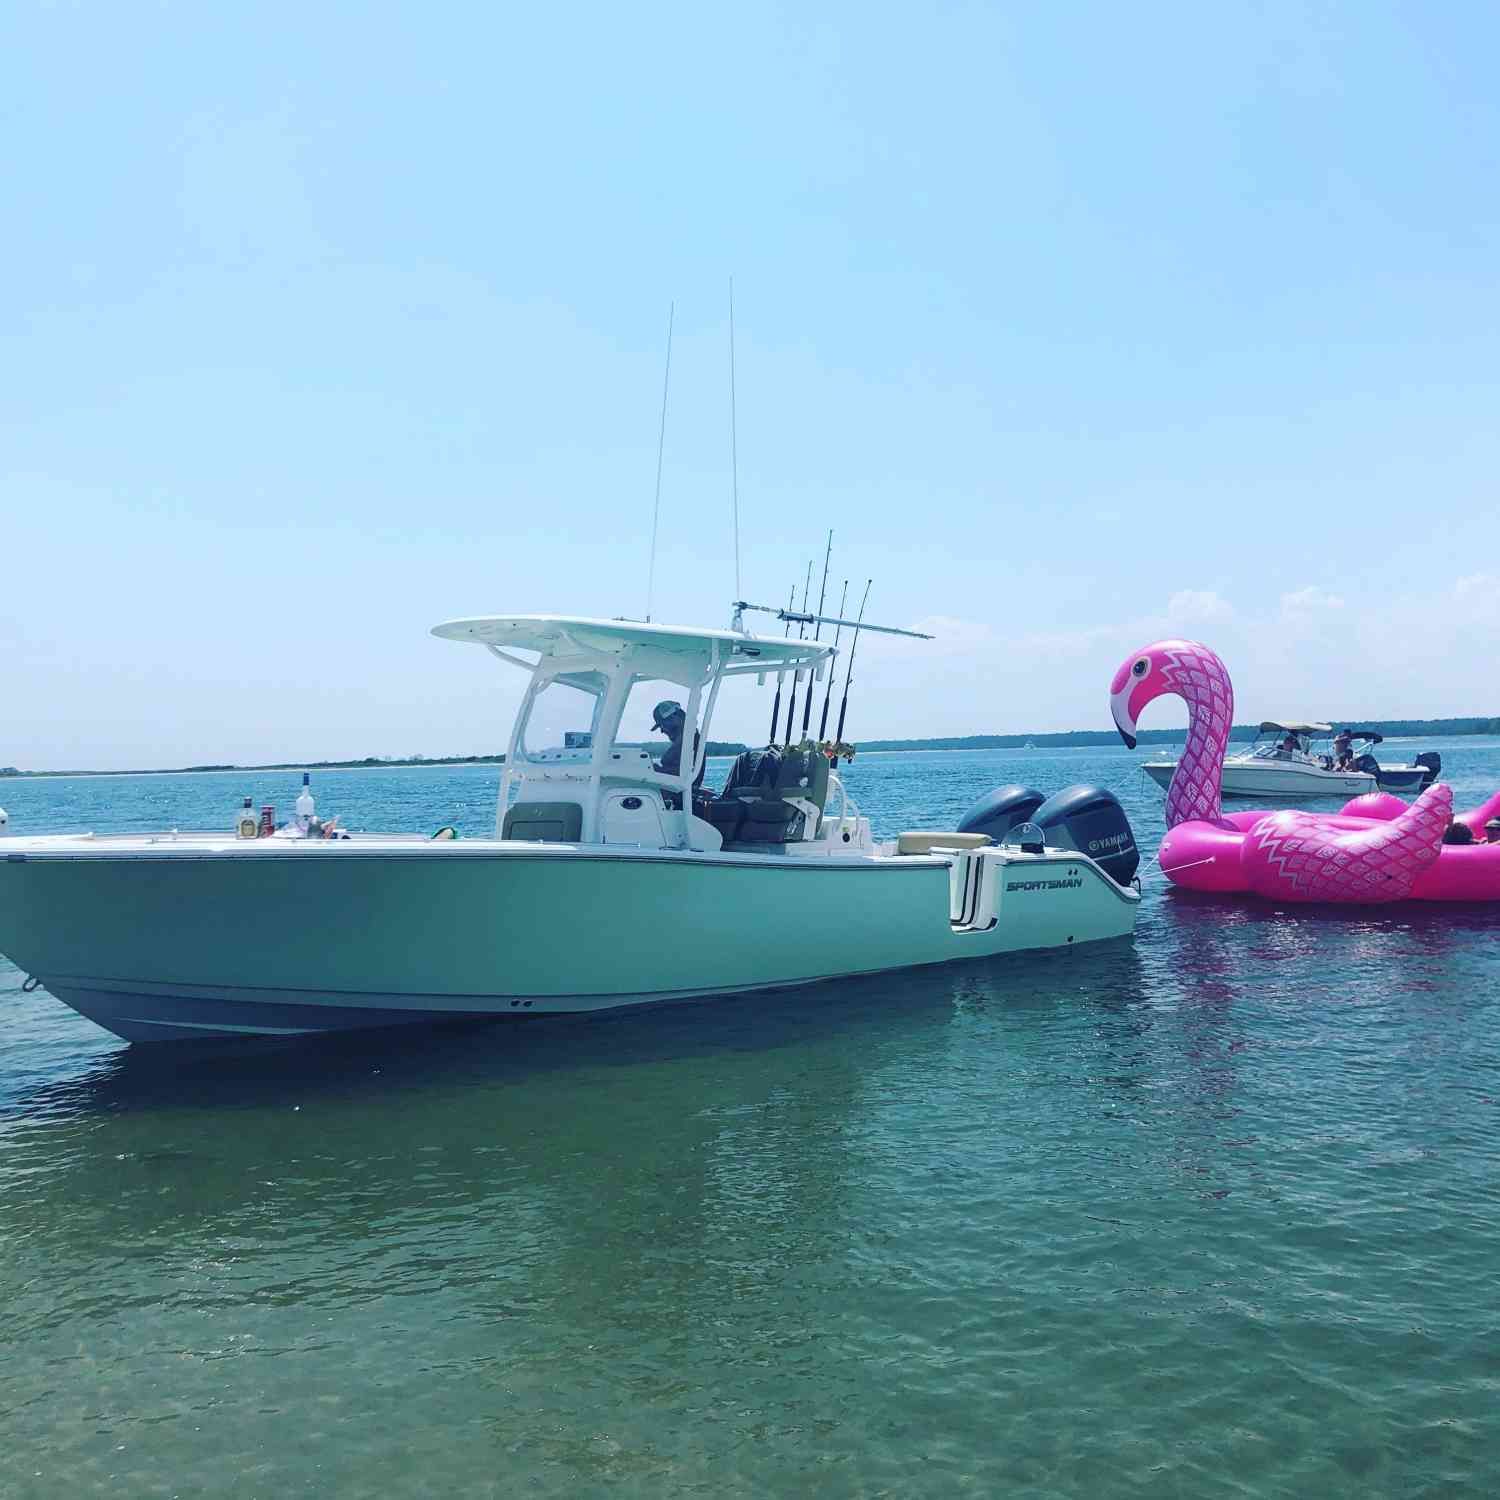 Title: Flamingo island - On board their Sportsman Open 282 Center Console - Location: North Myrtle beach, sc. Participating in the Photo Contest #SportsmanJune2018